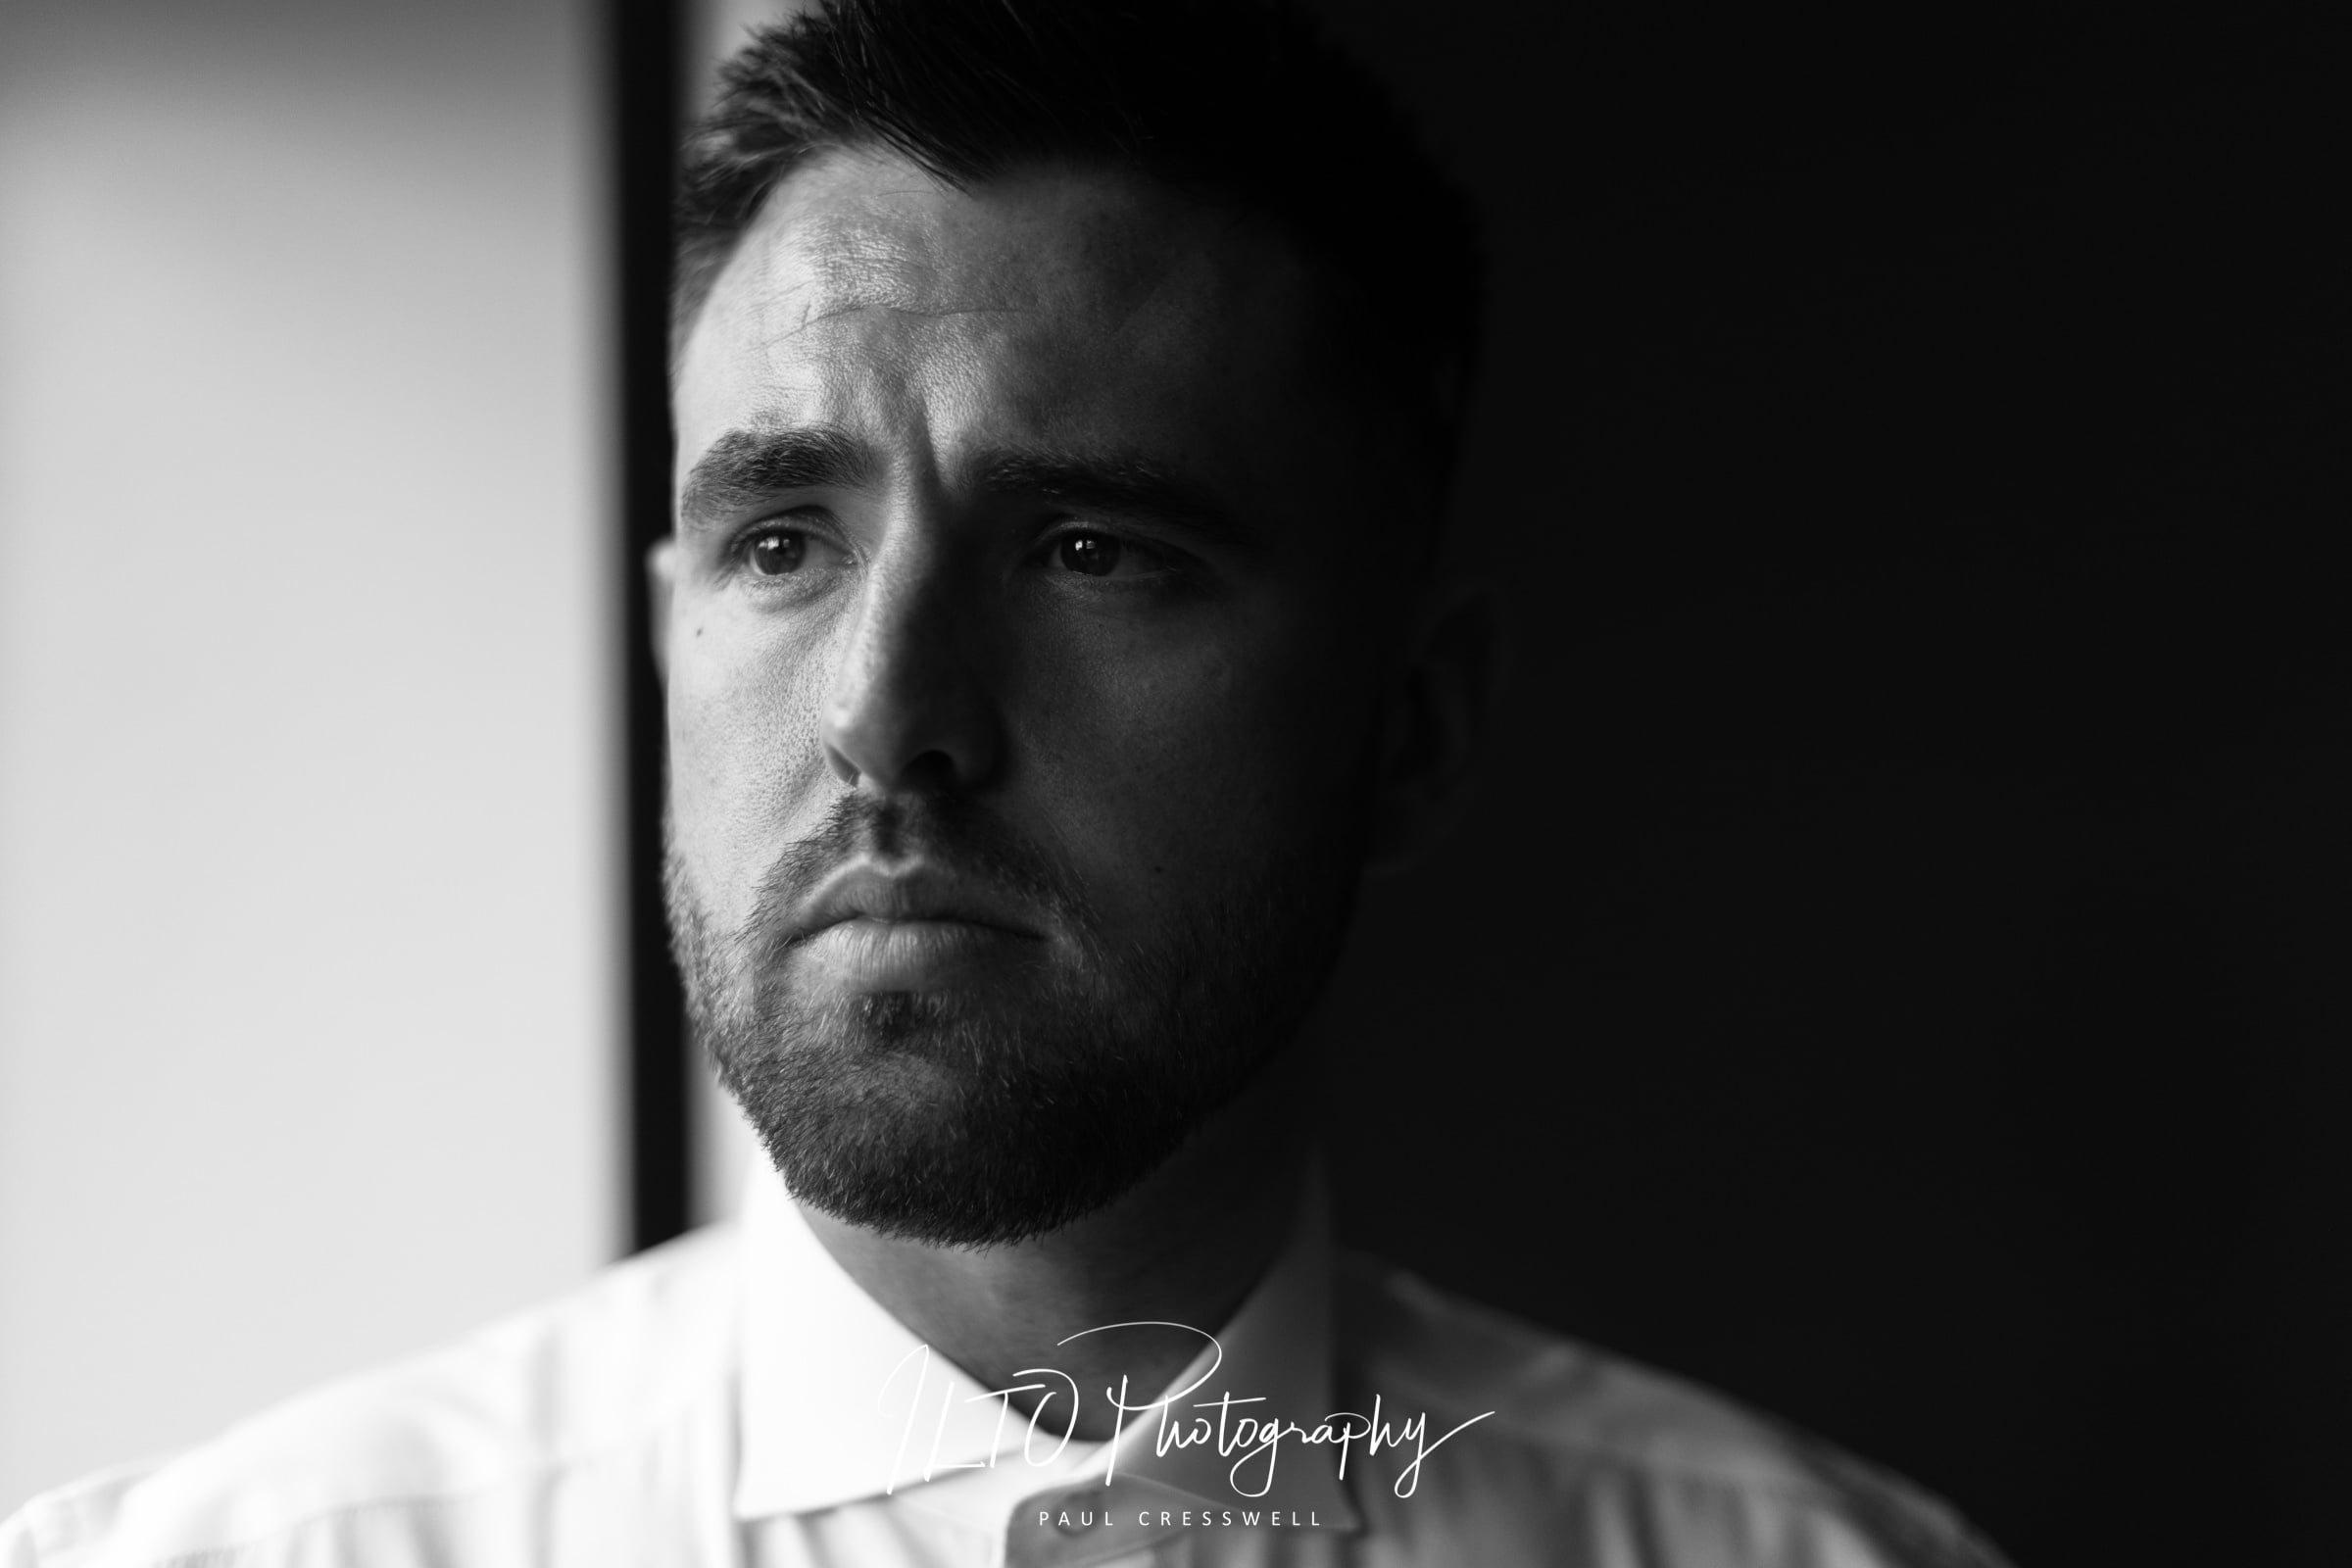 groom photo affordable modern Wedding photographer near me sheffield wakefield leeds